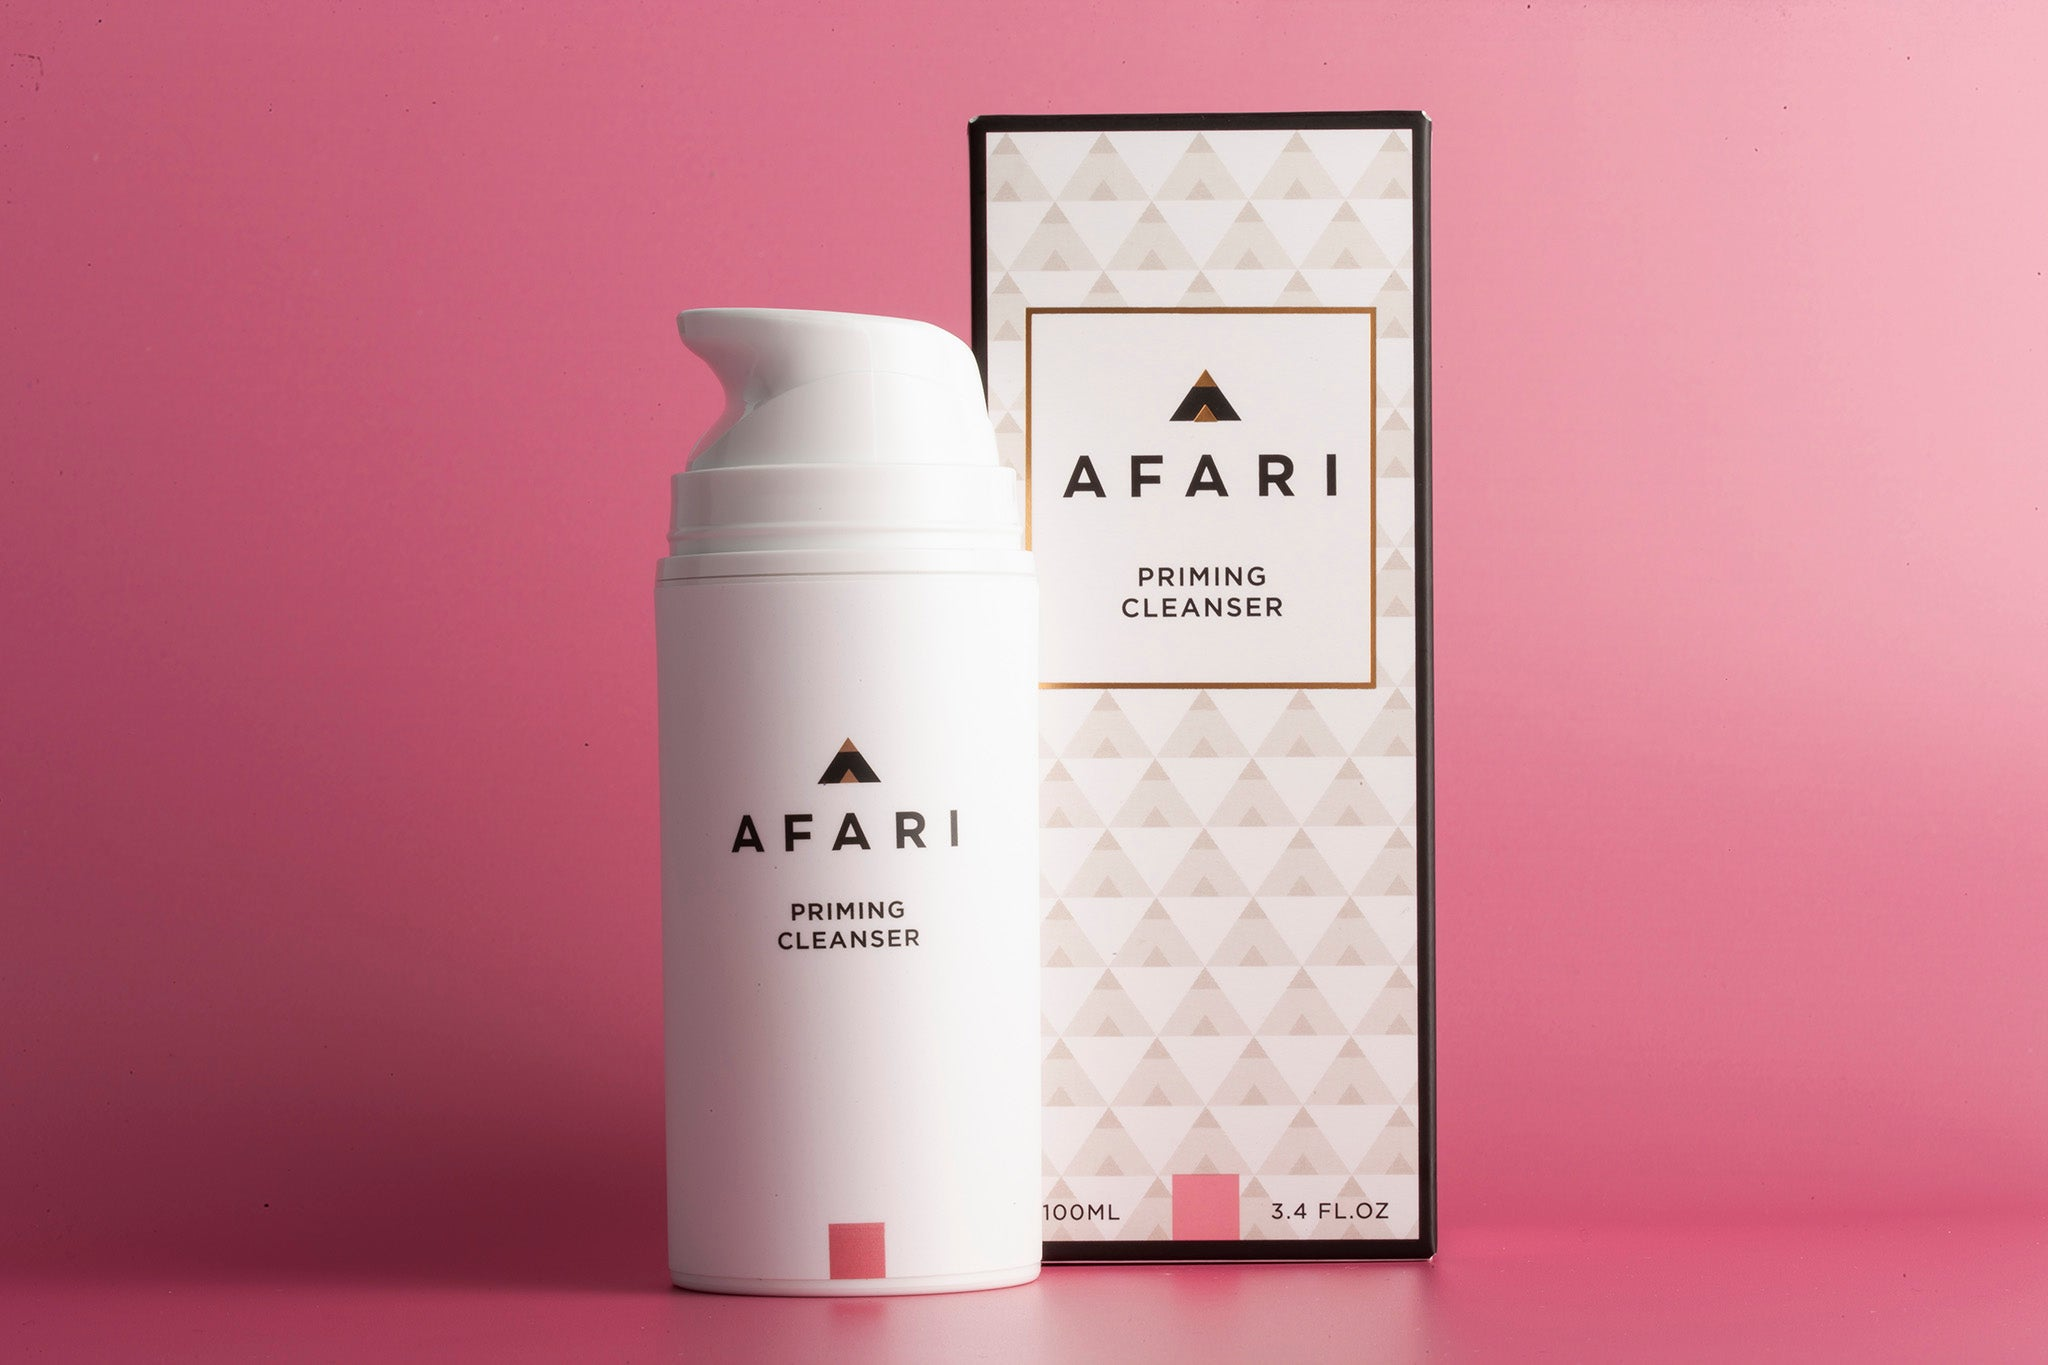 Priming and Foaming Cleanser - Shop Face online - Afari Skincare South Africa active ingredient, afari, all skin types, clean, cleanser, color_#71807E, priming cleanser